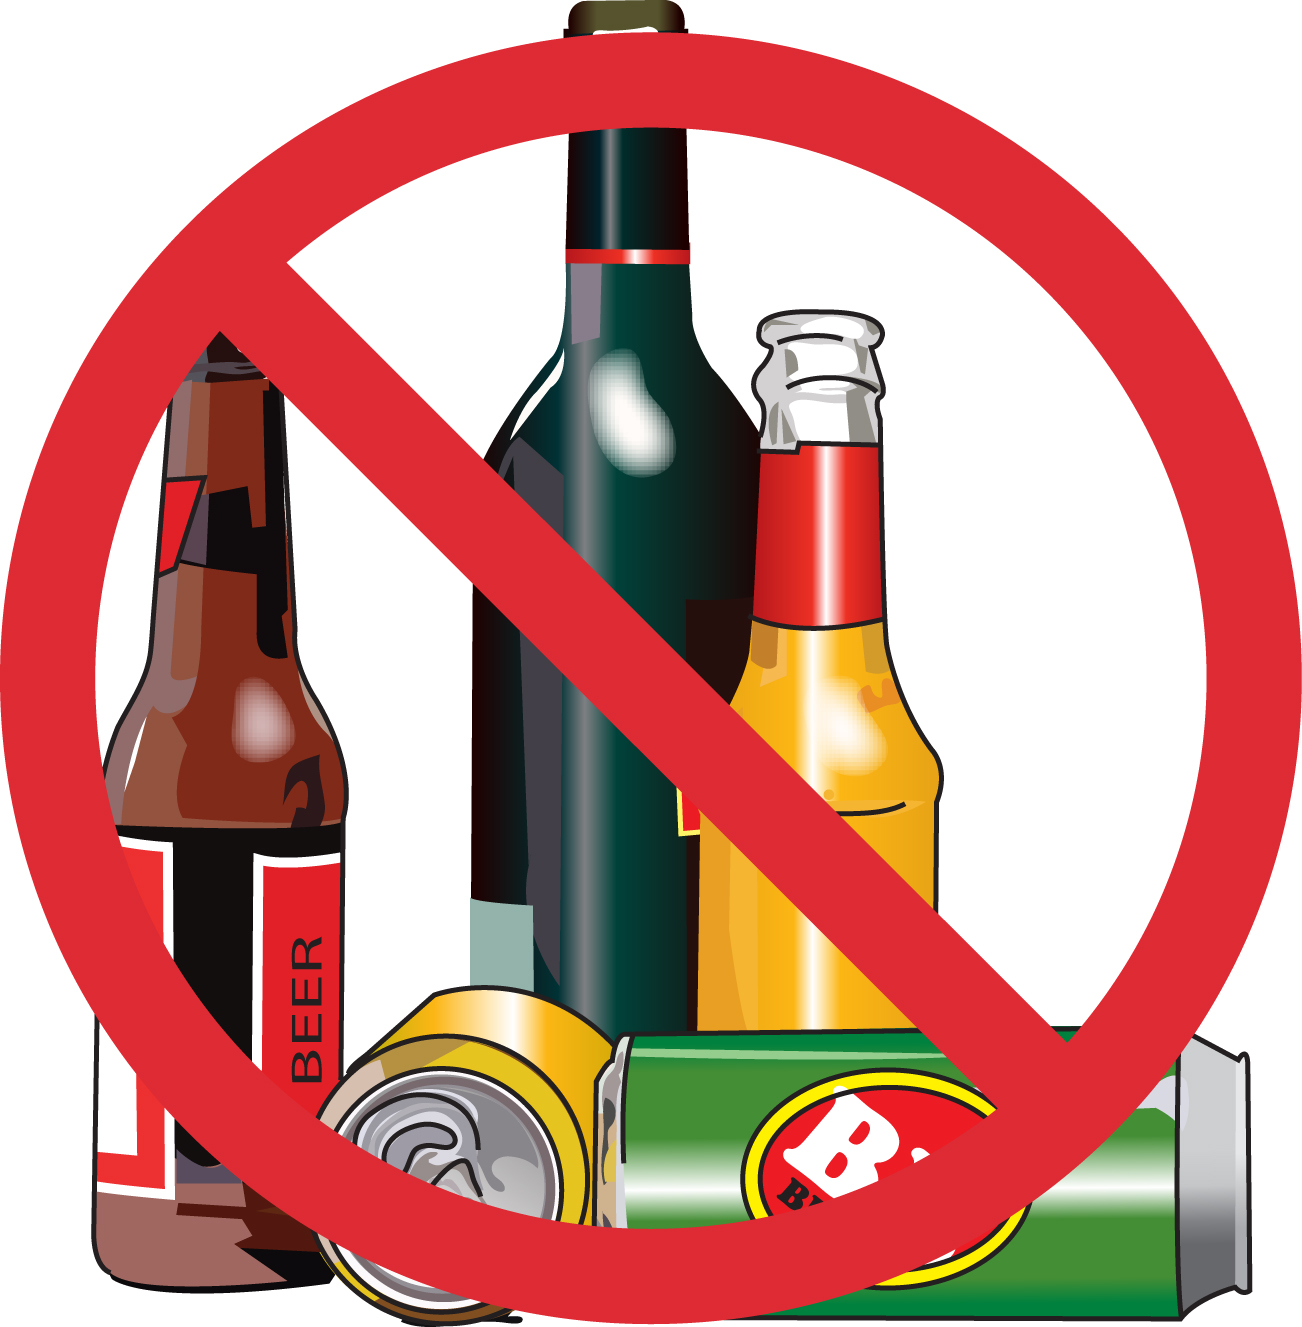 Avoid Alcohol Clipart.